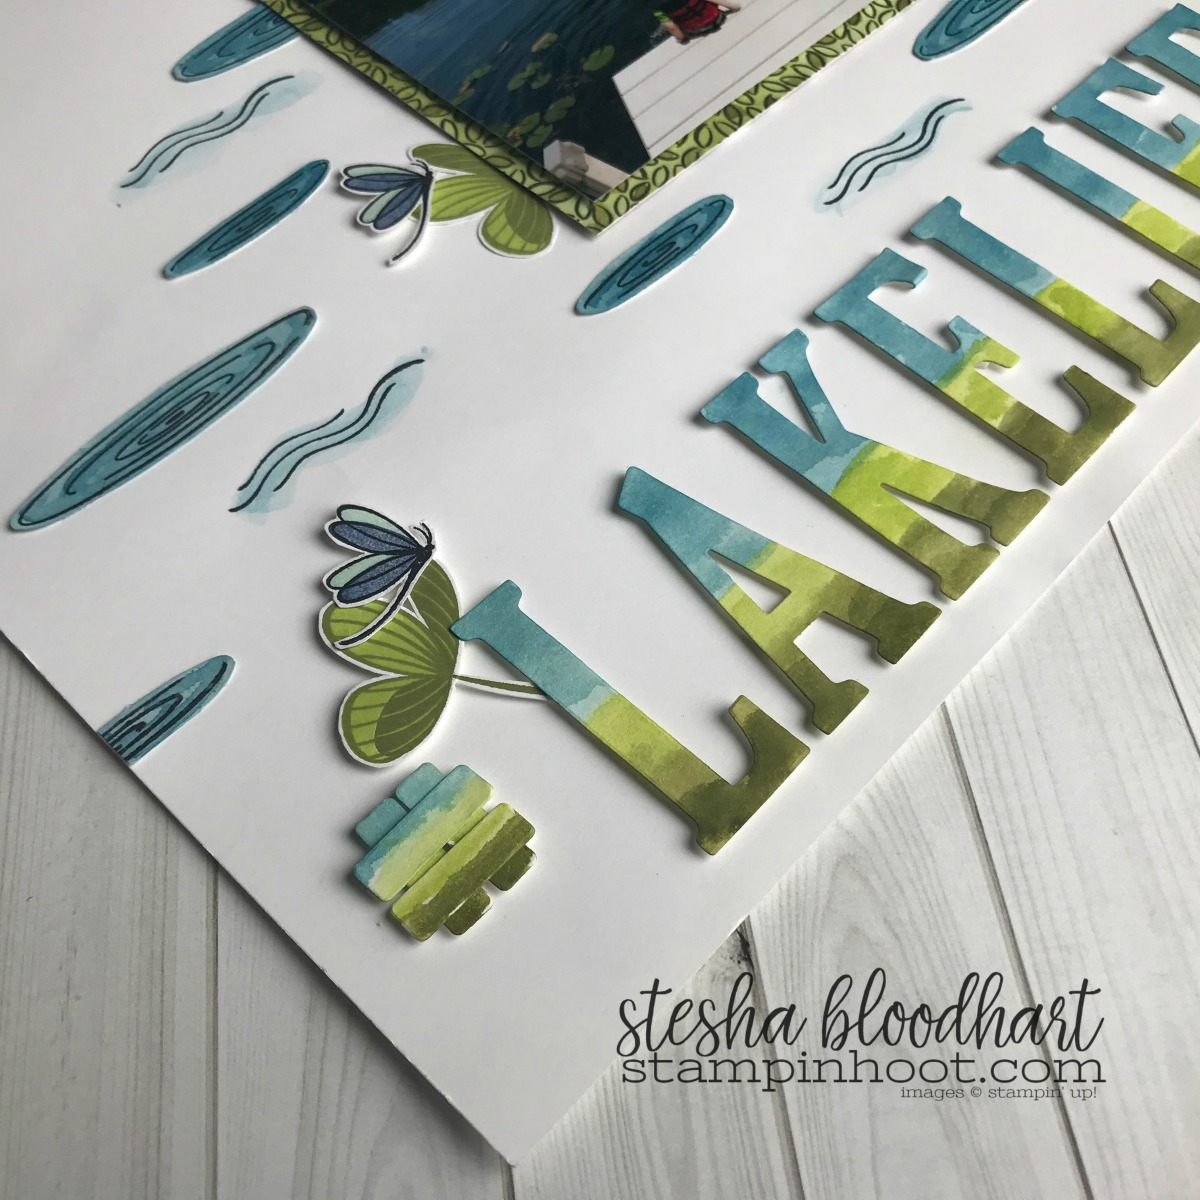 Peaceful Reflection Stamp Set by Stampin' Up! Sneak Peek 2018-2019 Annual Catalog #lakelife scrapbook page by Stesha Bloodhart for #onstage2018 Milwaukee Display Board #steshabloodhart #stampinhoot #stampinup30